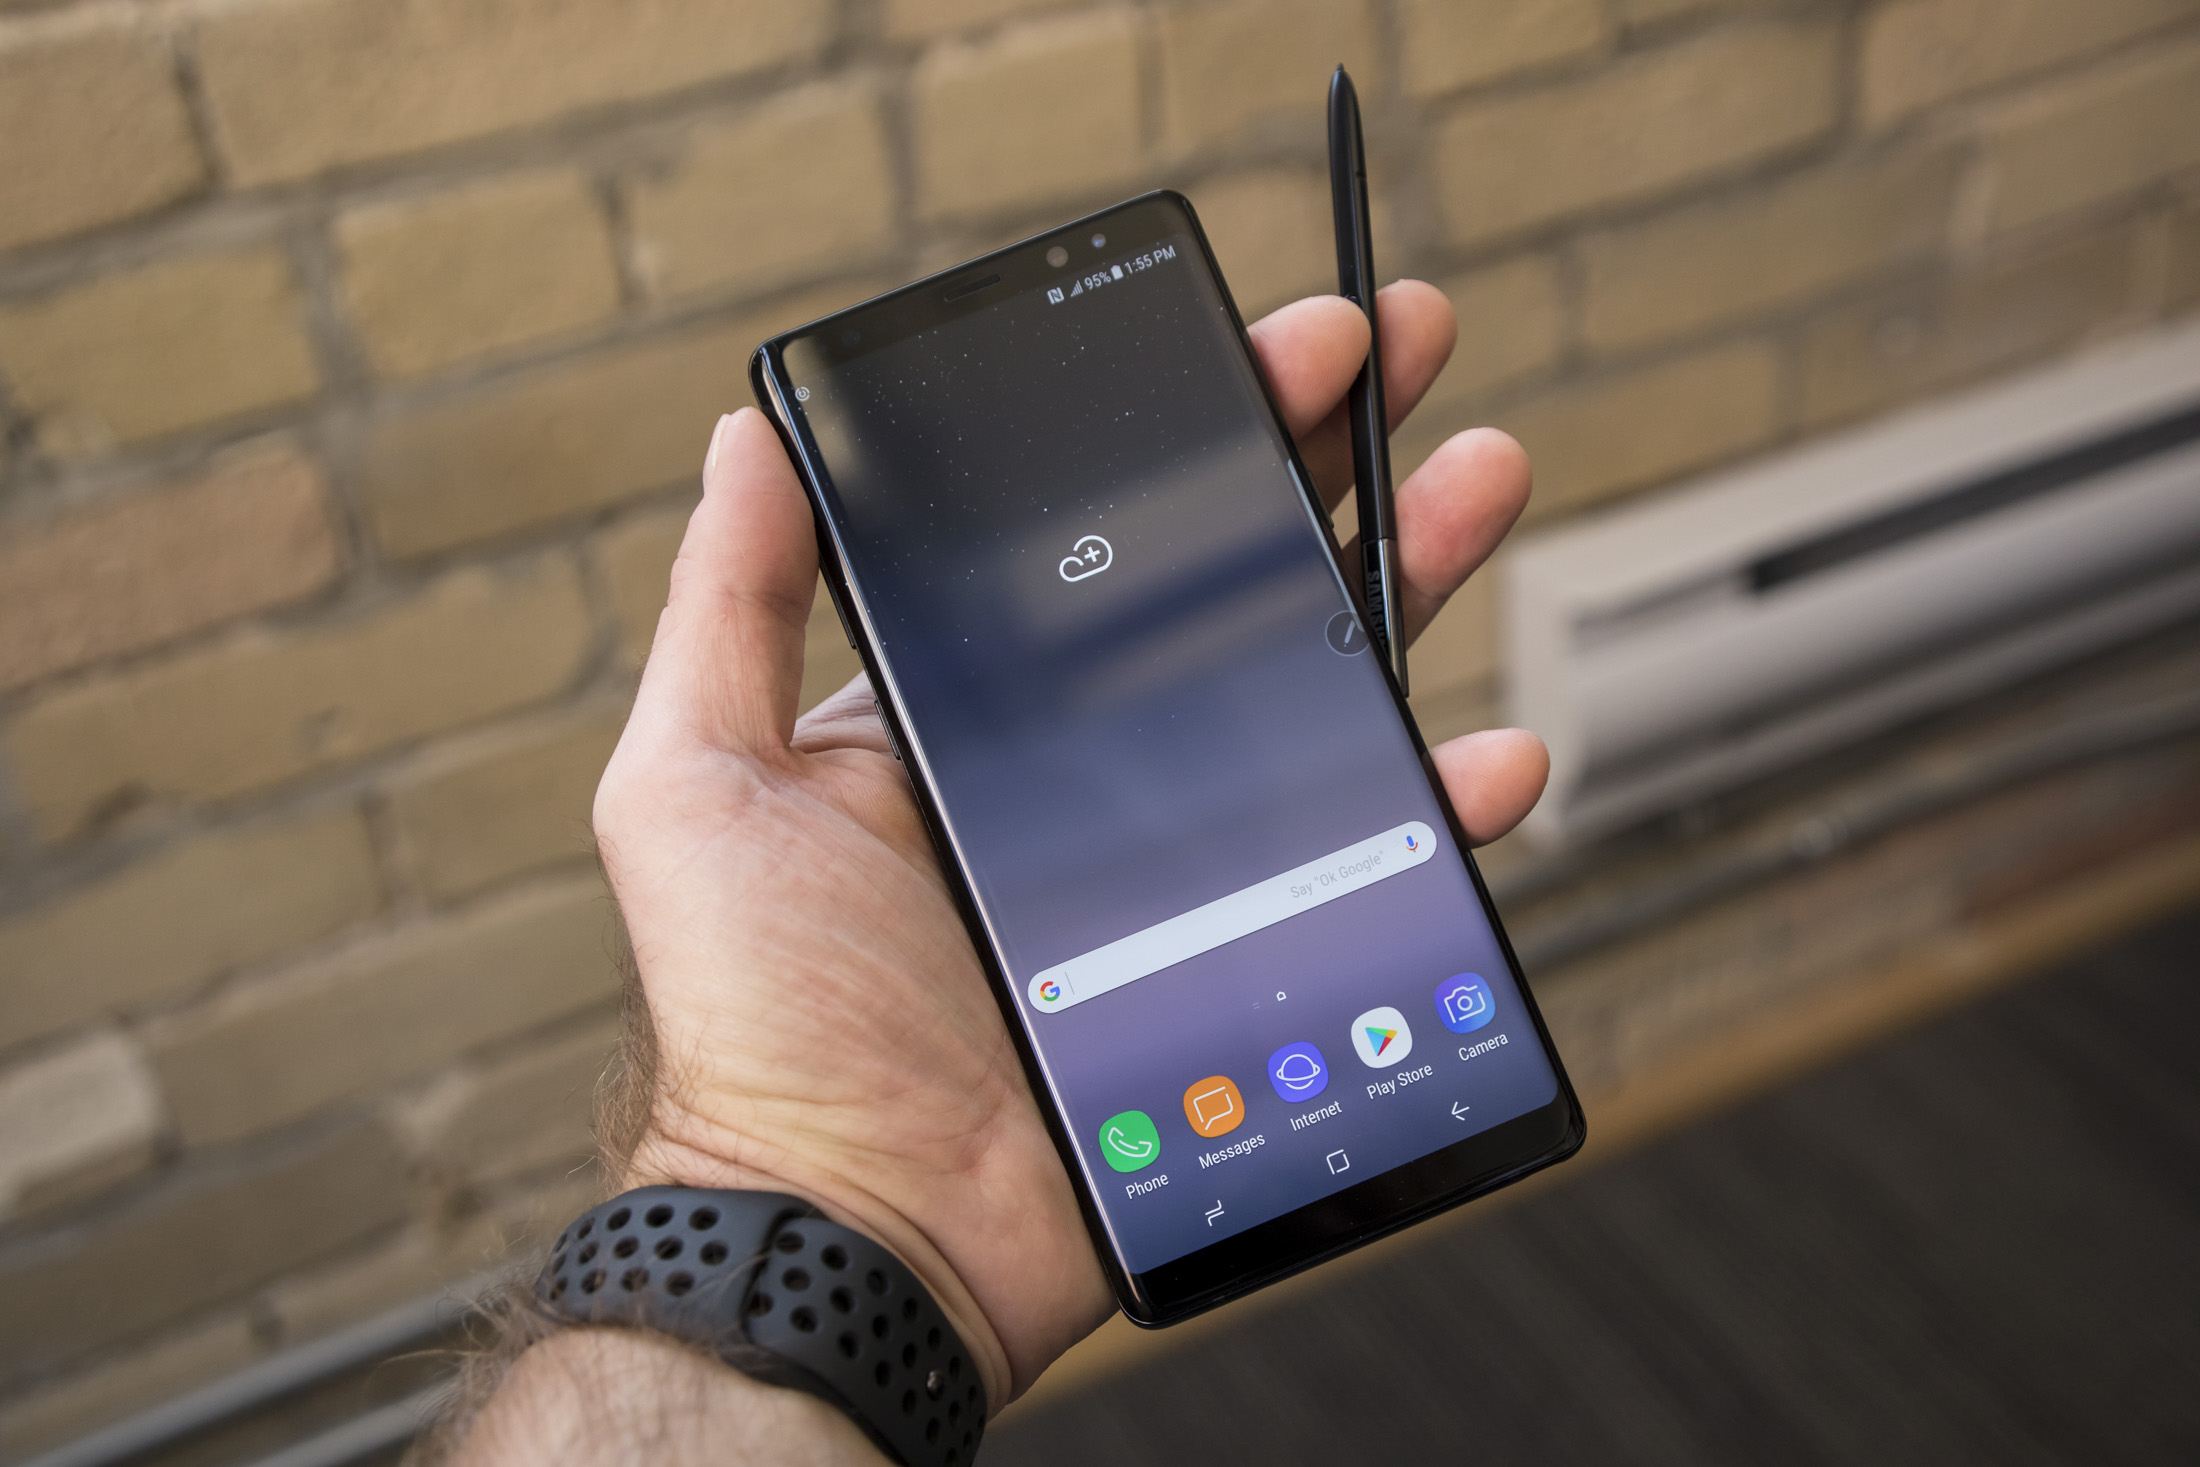 Samsung's Galaxy Note 8 seems like the dream of the phablet